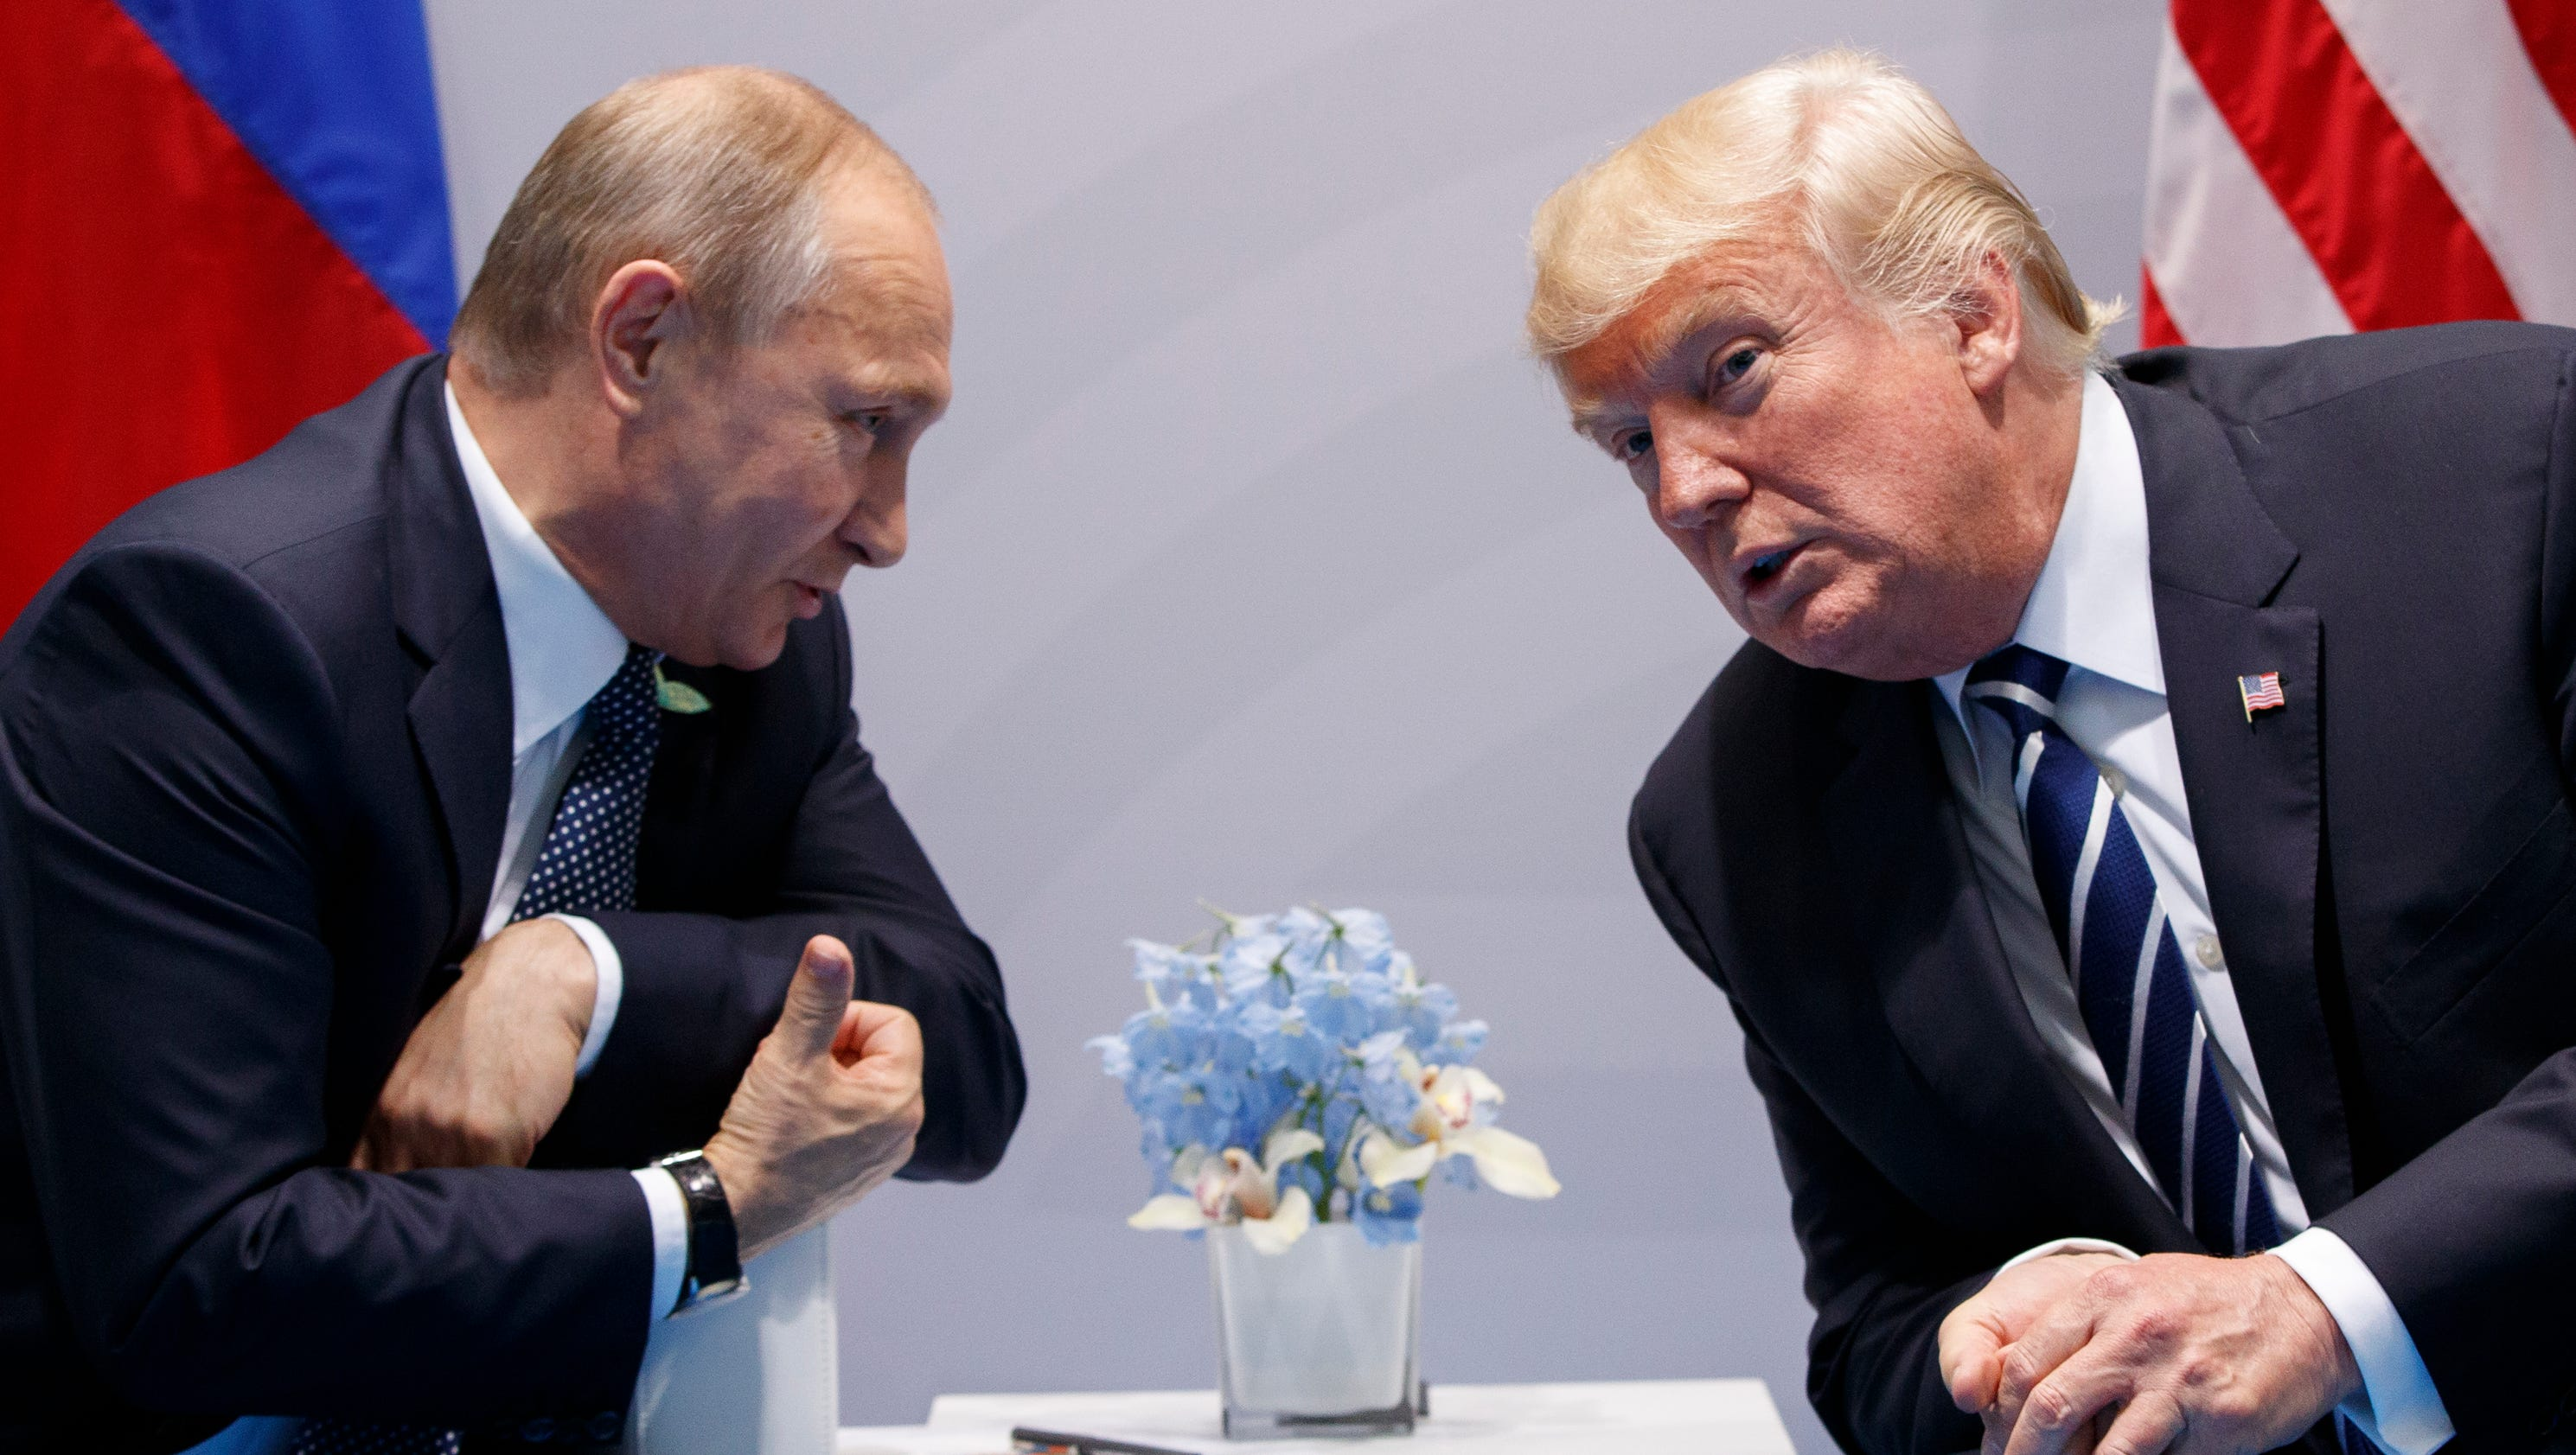 Trump on Vladimir Putin: 'We've had some very, very good talks'